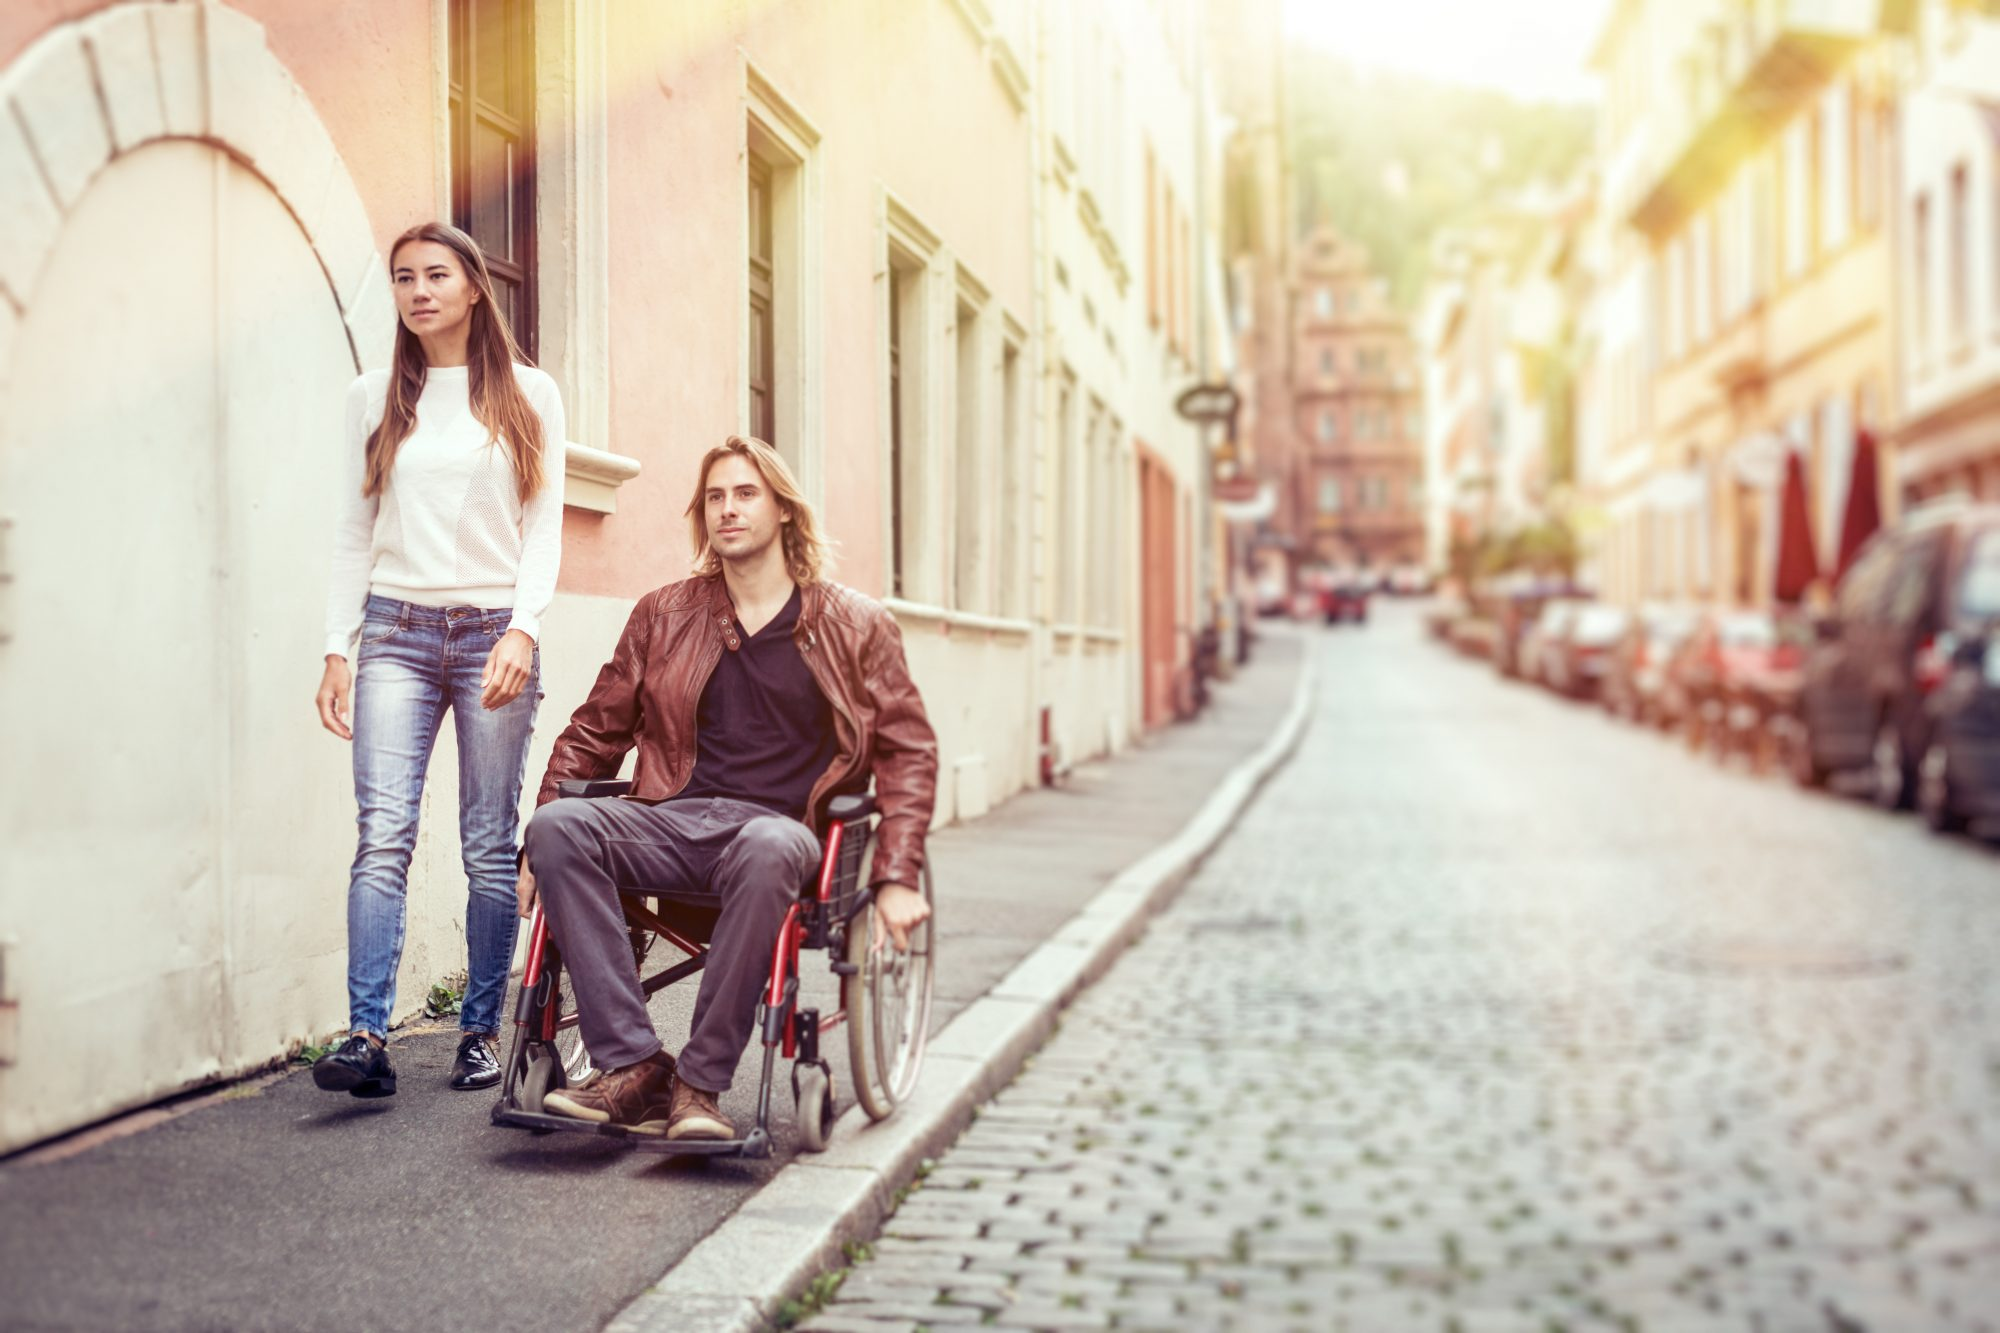 Couple with Man in Wheelchair